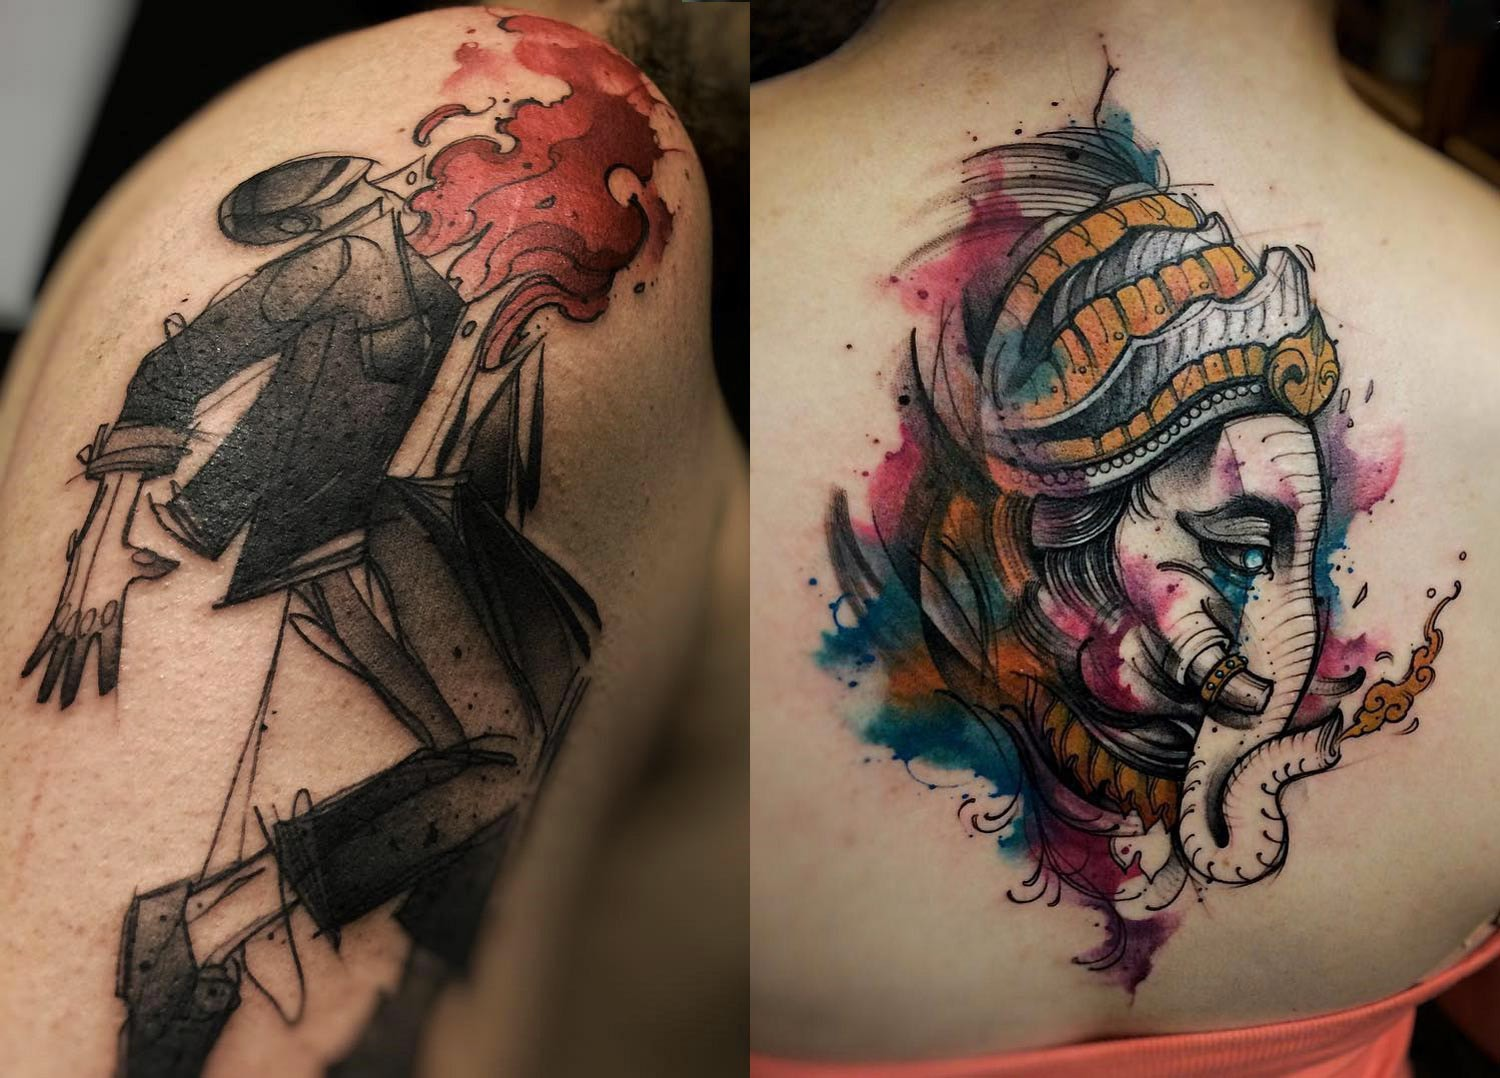 Tattoos by Felipe Rodrigues